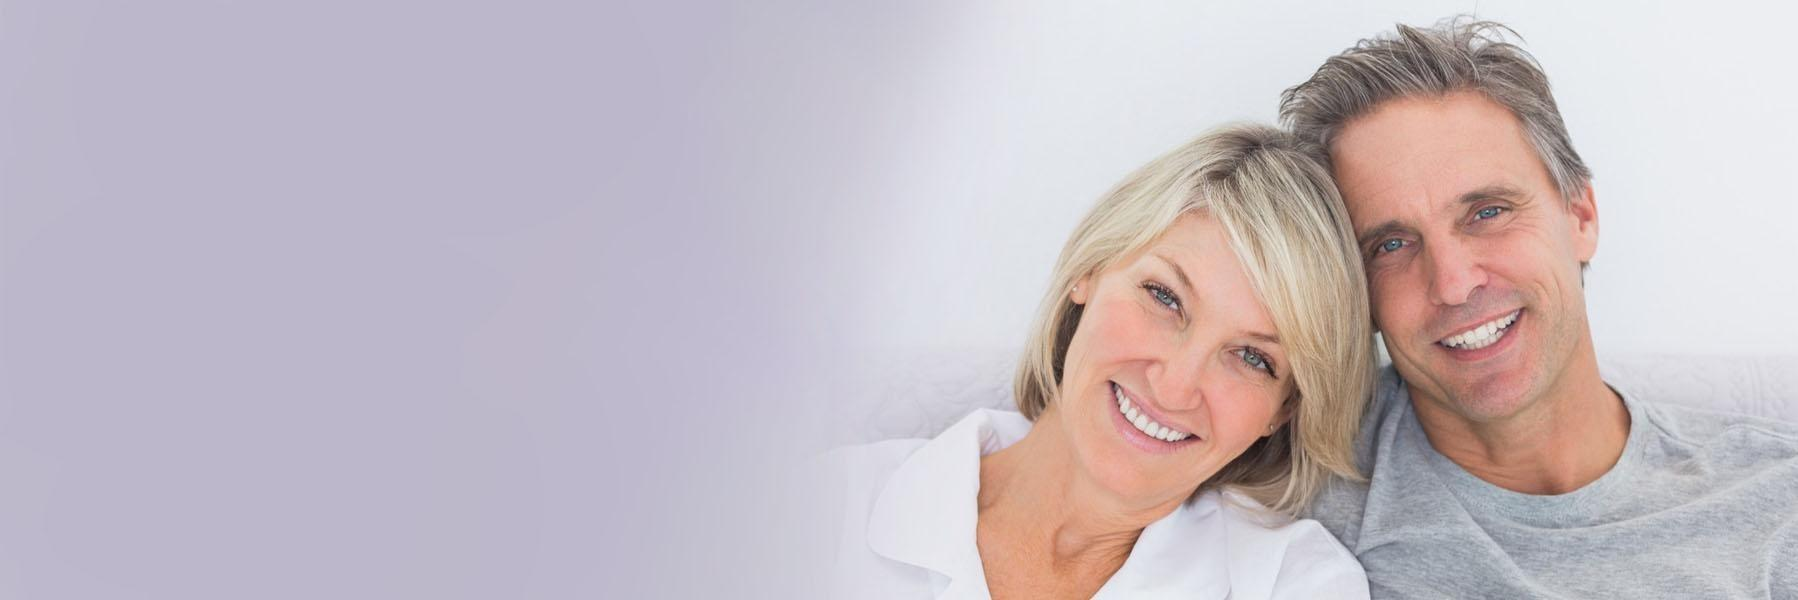 Couple | Dental Implants in Calton